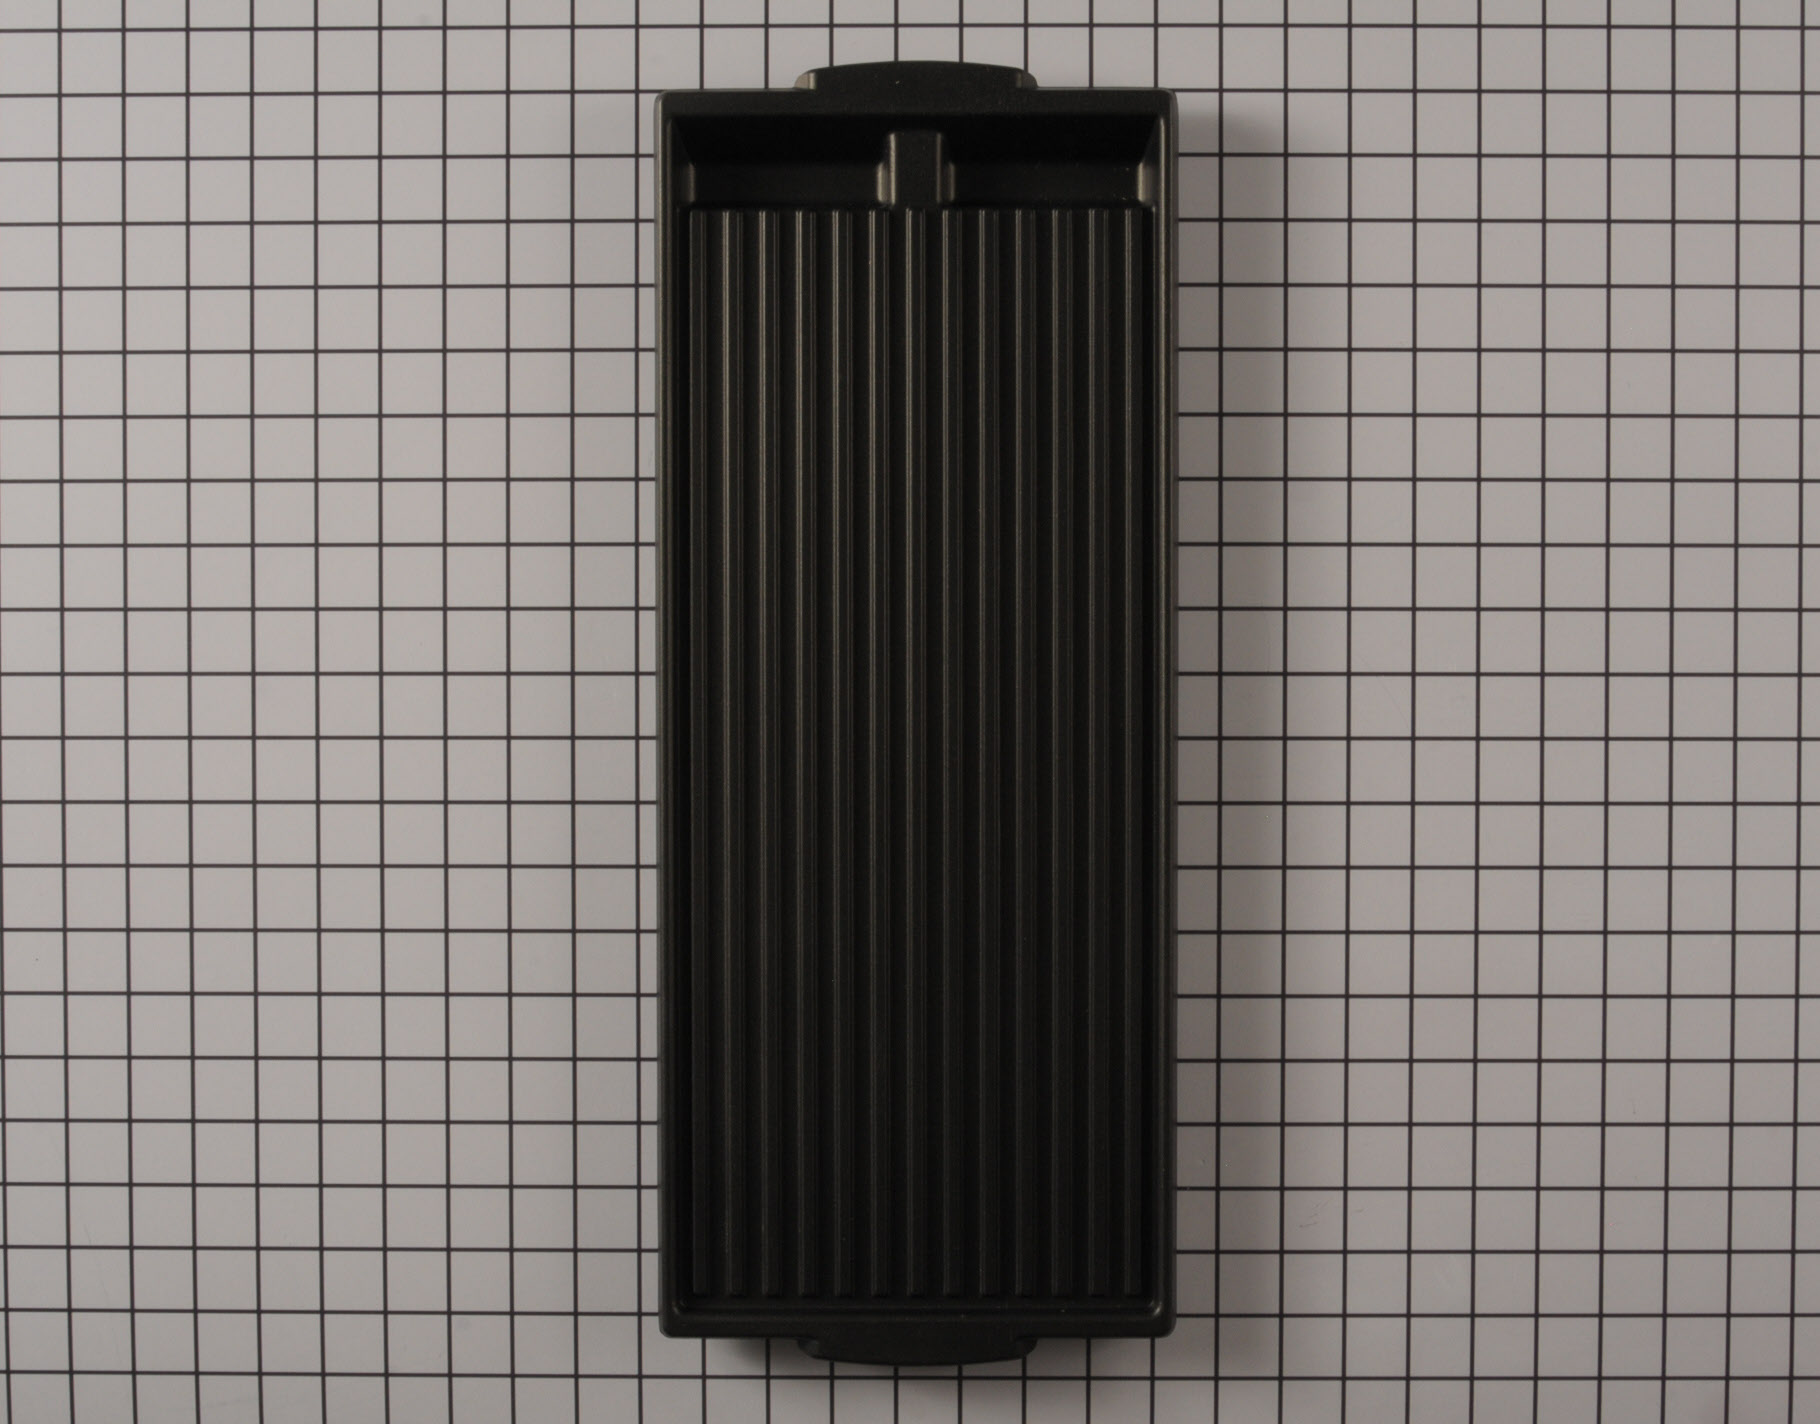 Whirlpool Range/Stove/Oven Part # W10432545 - Grill Grate